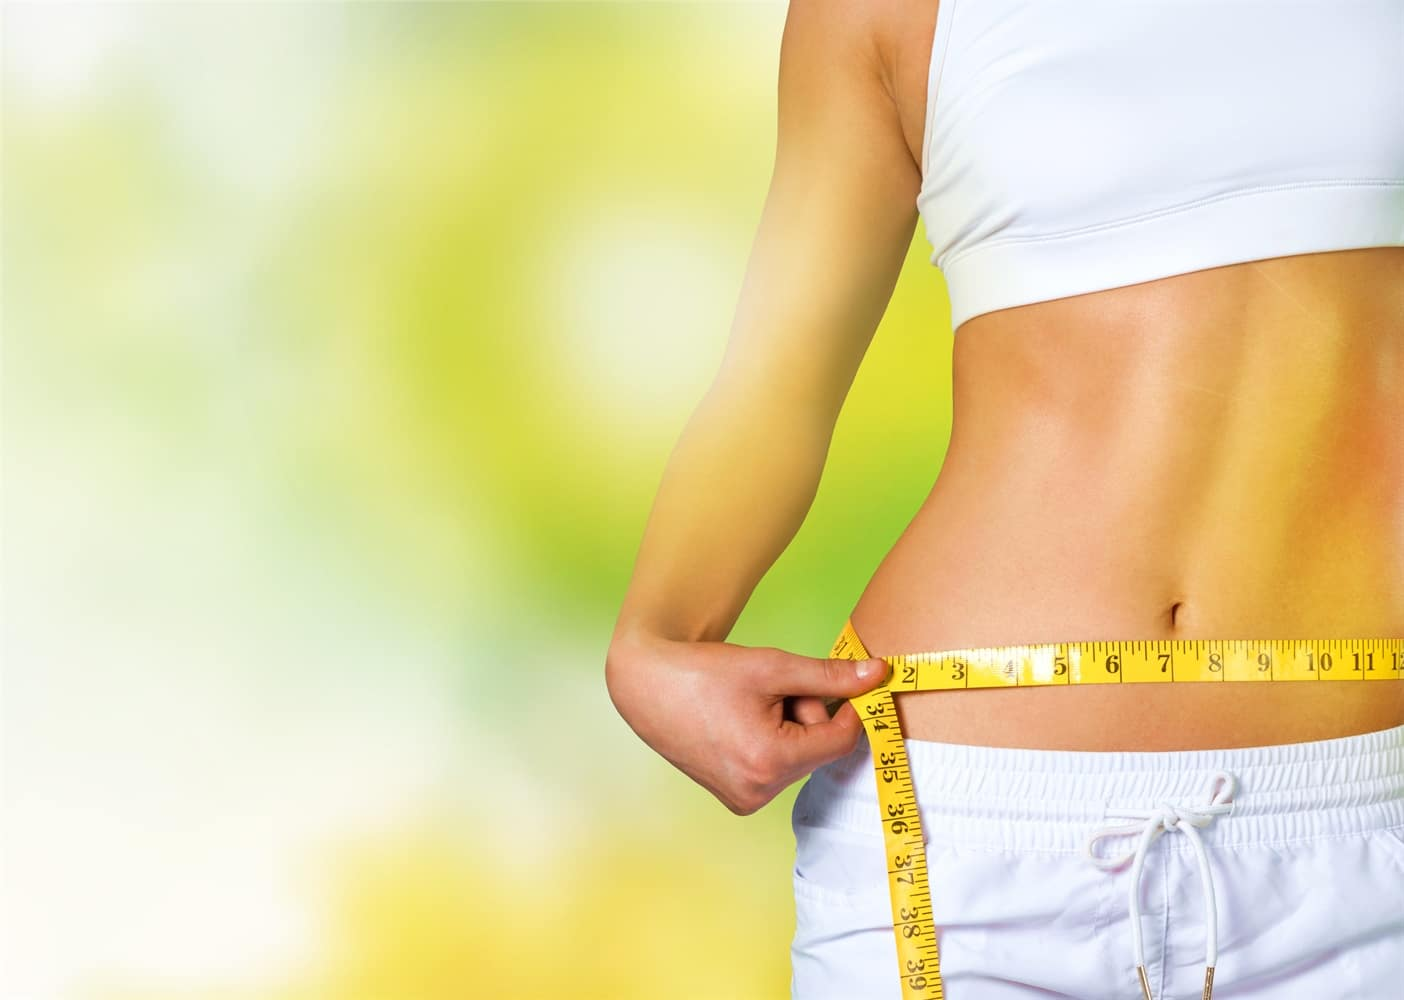 Weight loss and management | Dr. Kevin Crawford, Lubbock TX